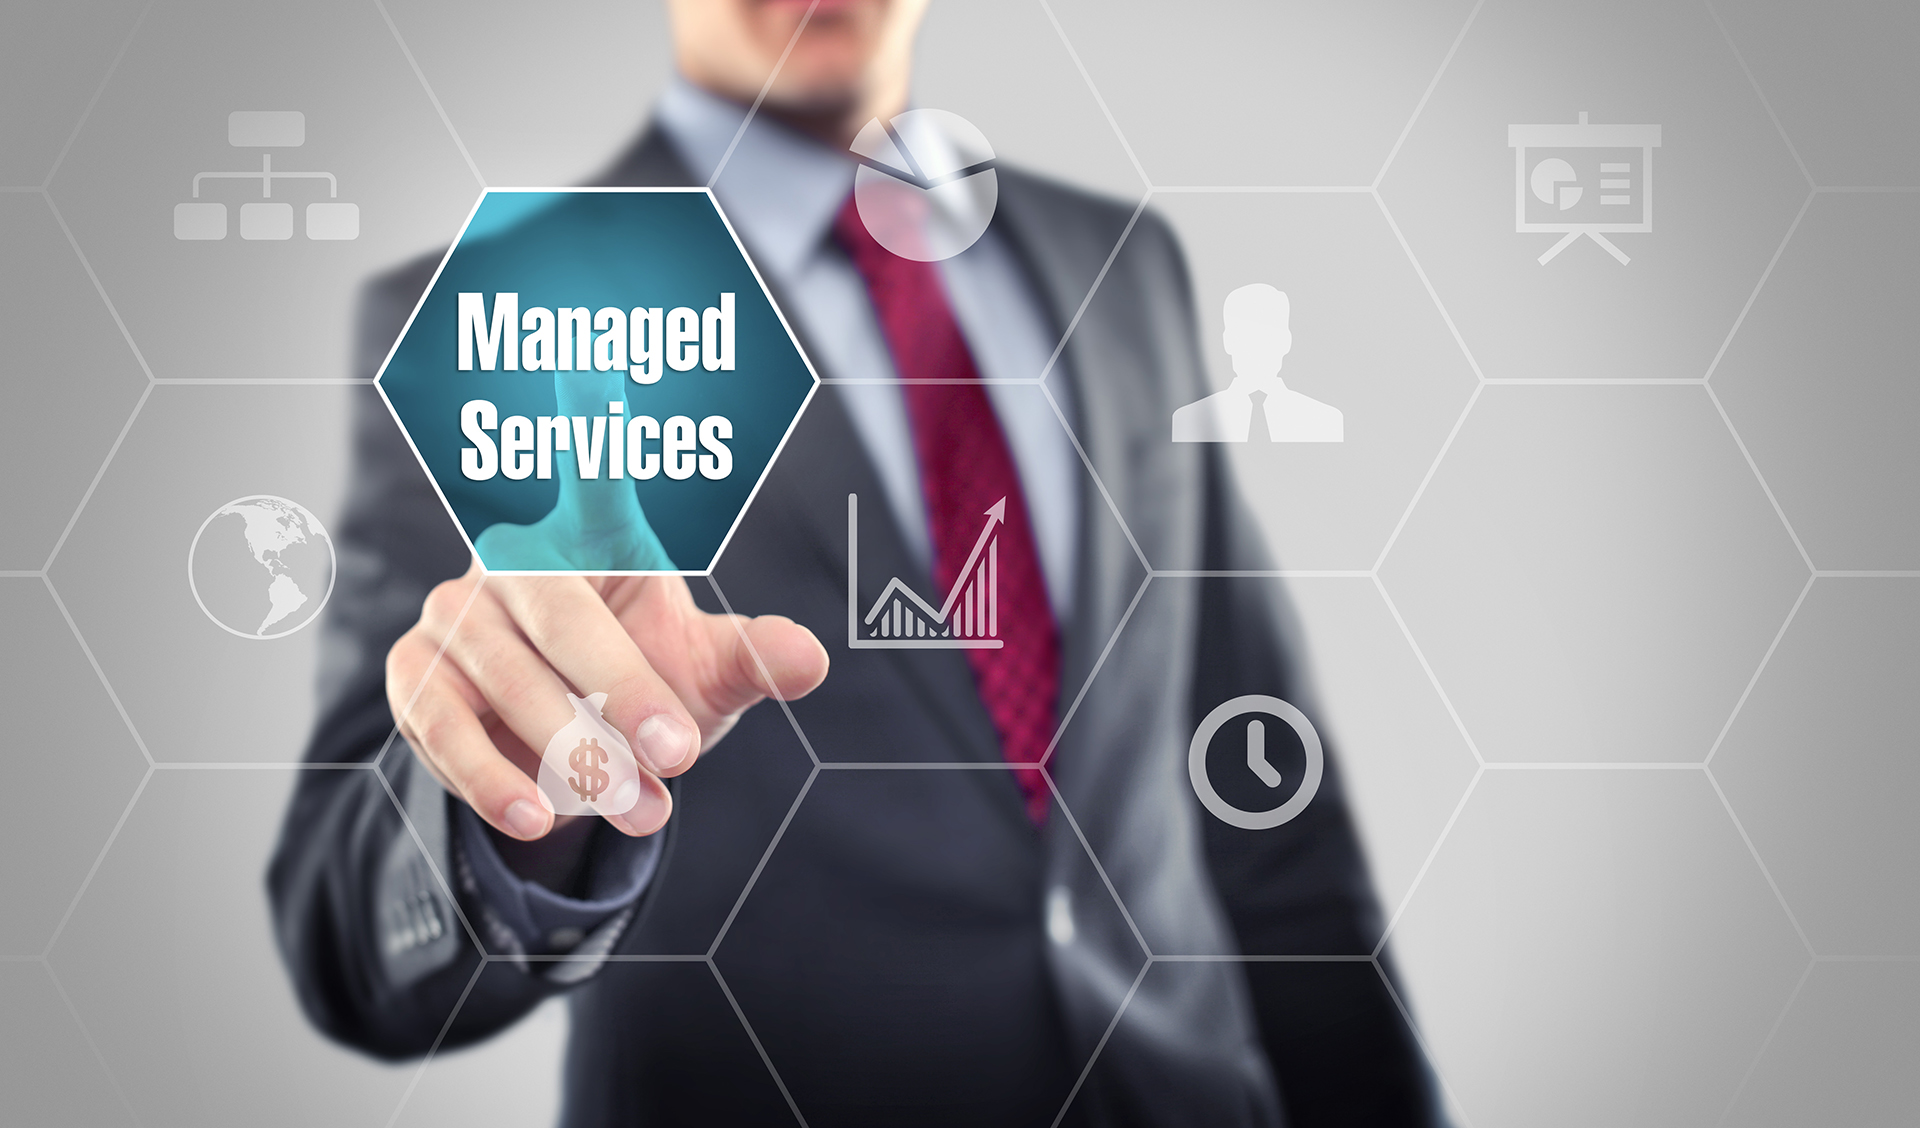 ACD Managed Services